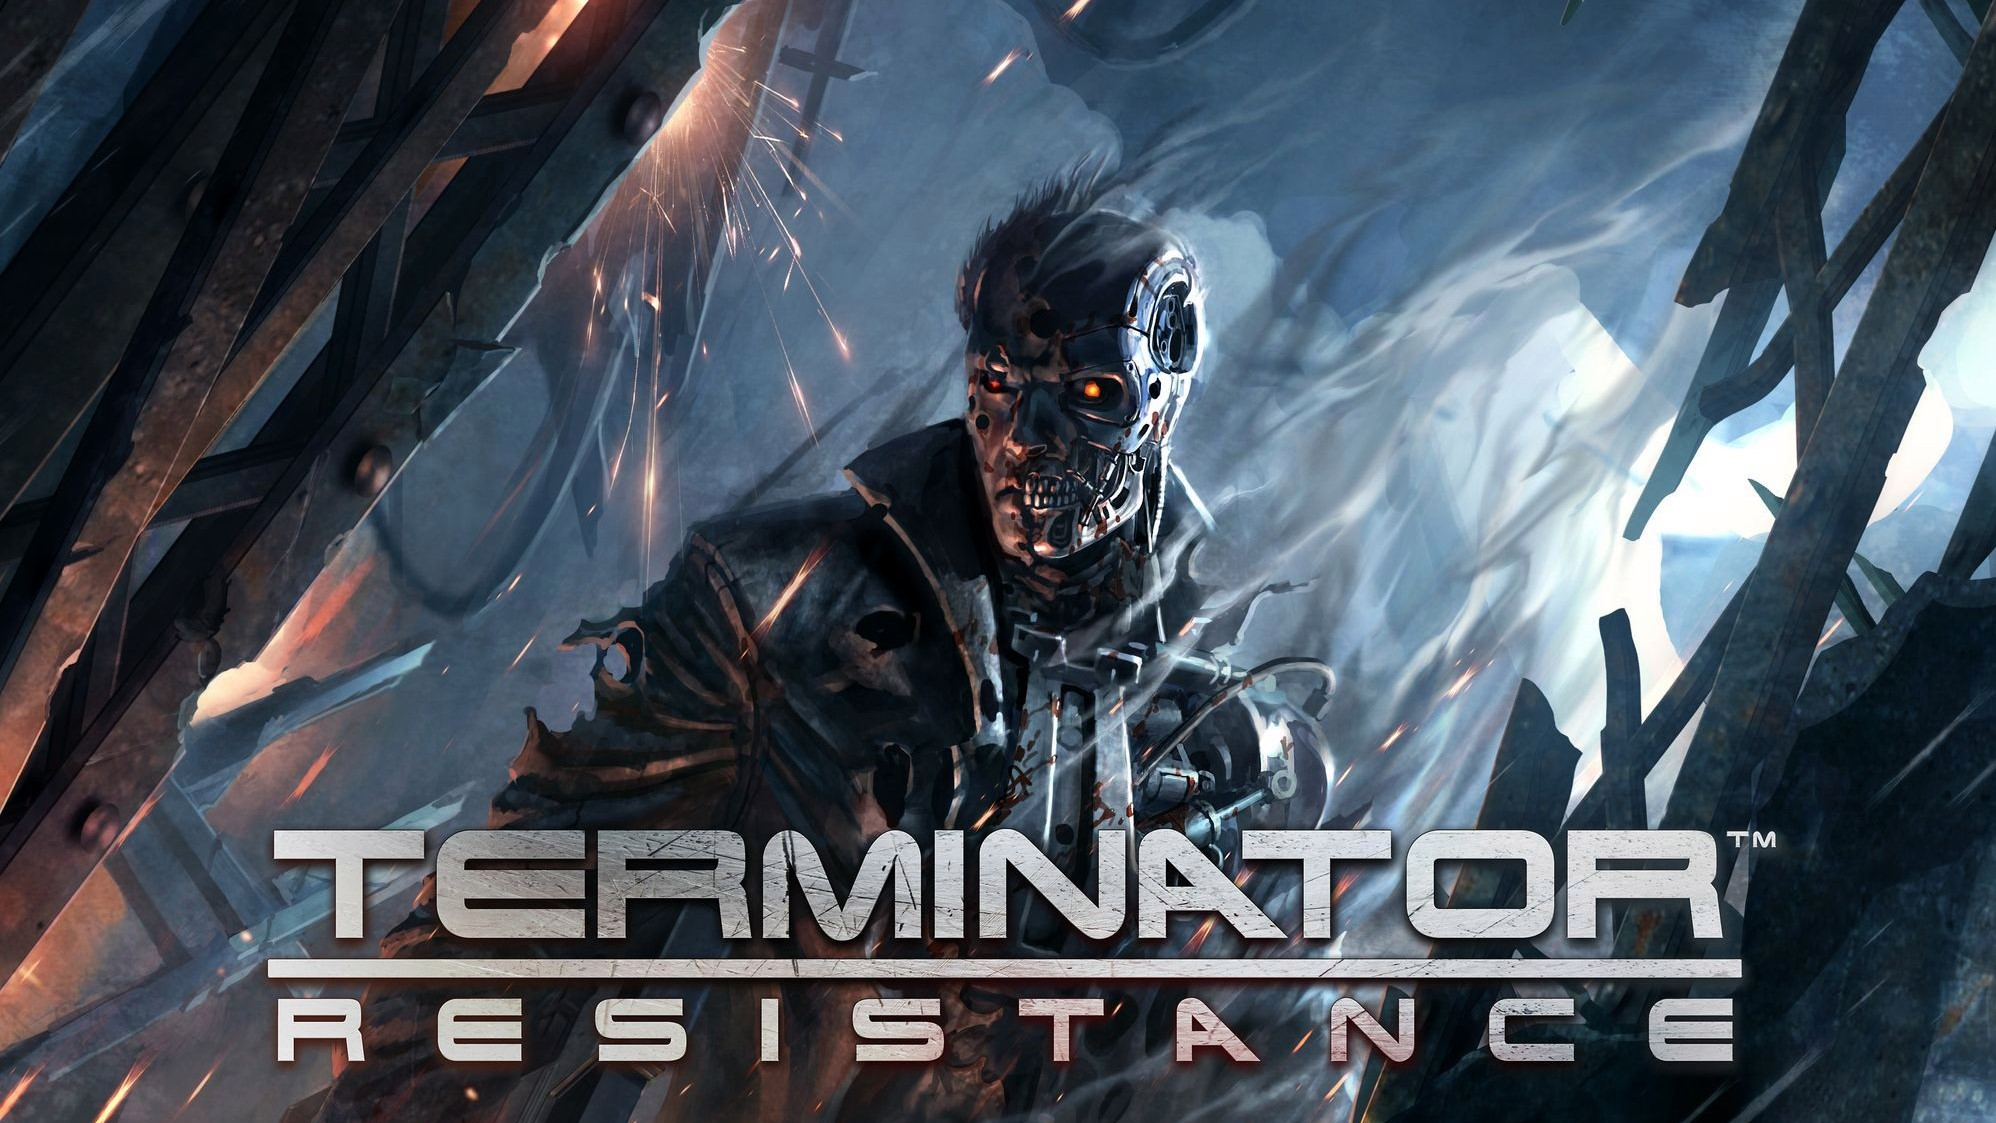 Terminator: Resistance announced for PS4, Xbox One, and PC